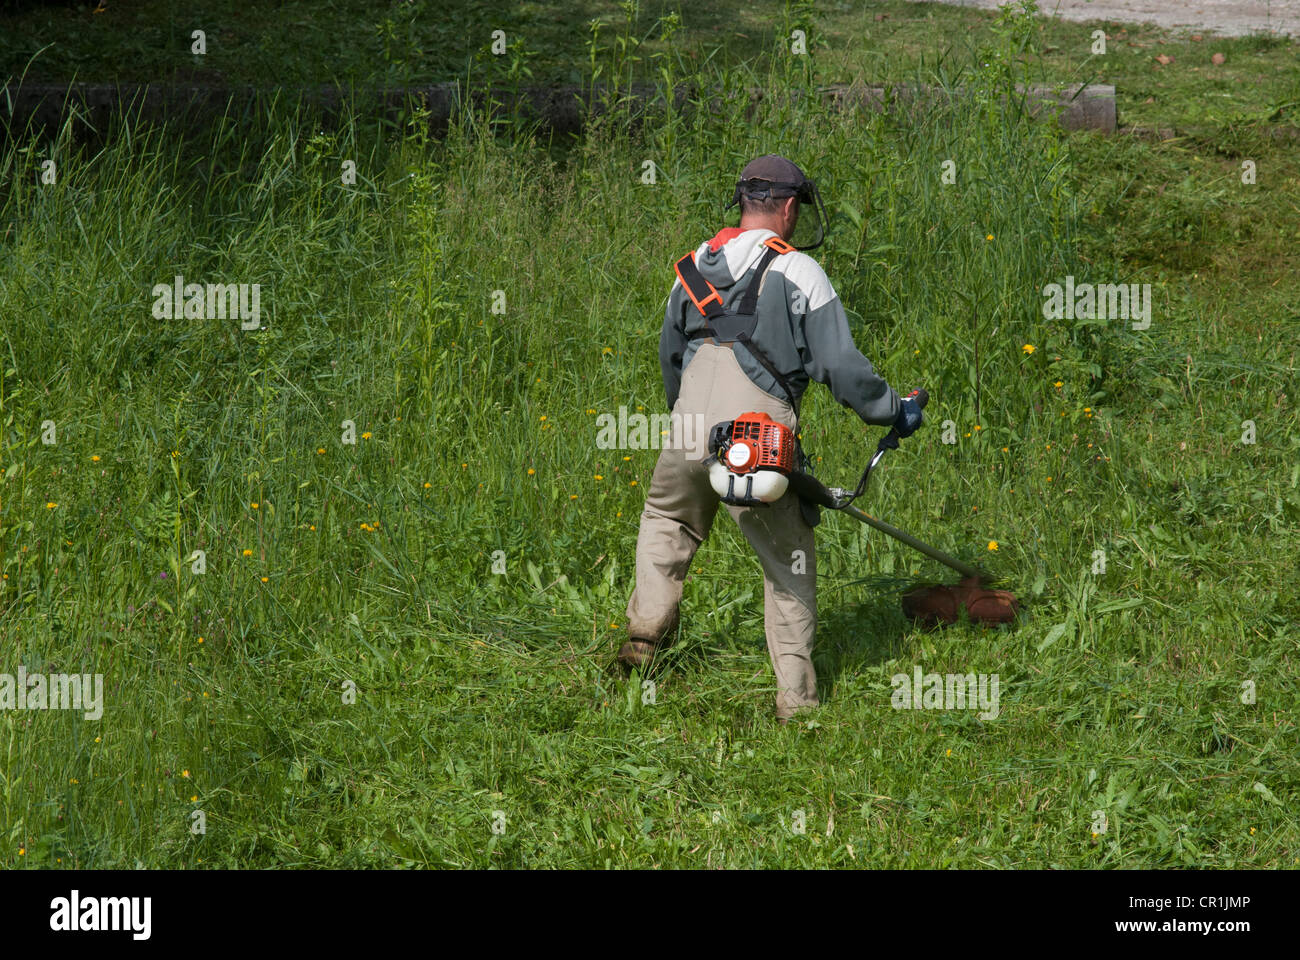 Manual Lawn Mower Stock Photos Images Alamy Engine Diagram An Employee Cut The Image